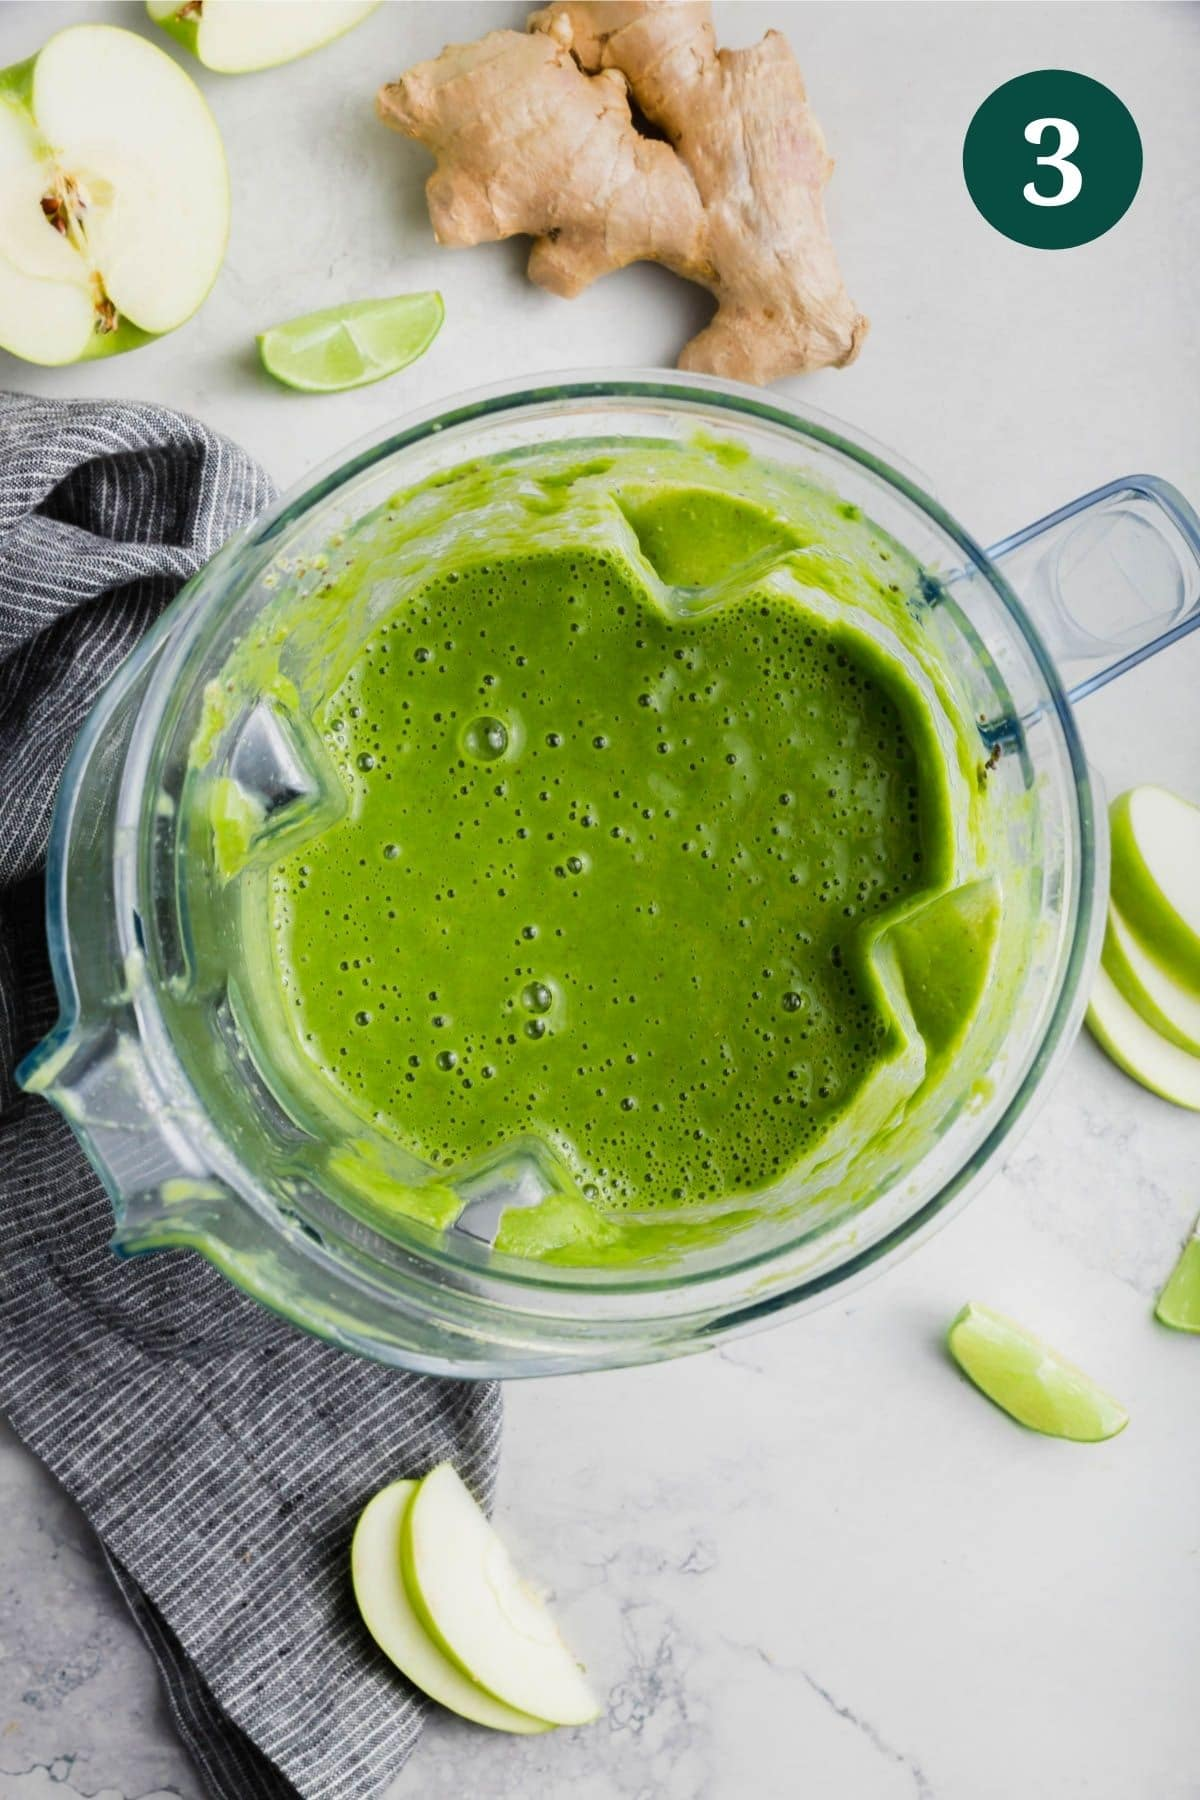 A blender with apple kale green smoothie in it and fresh ginger and apple on the table.